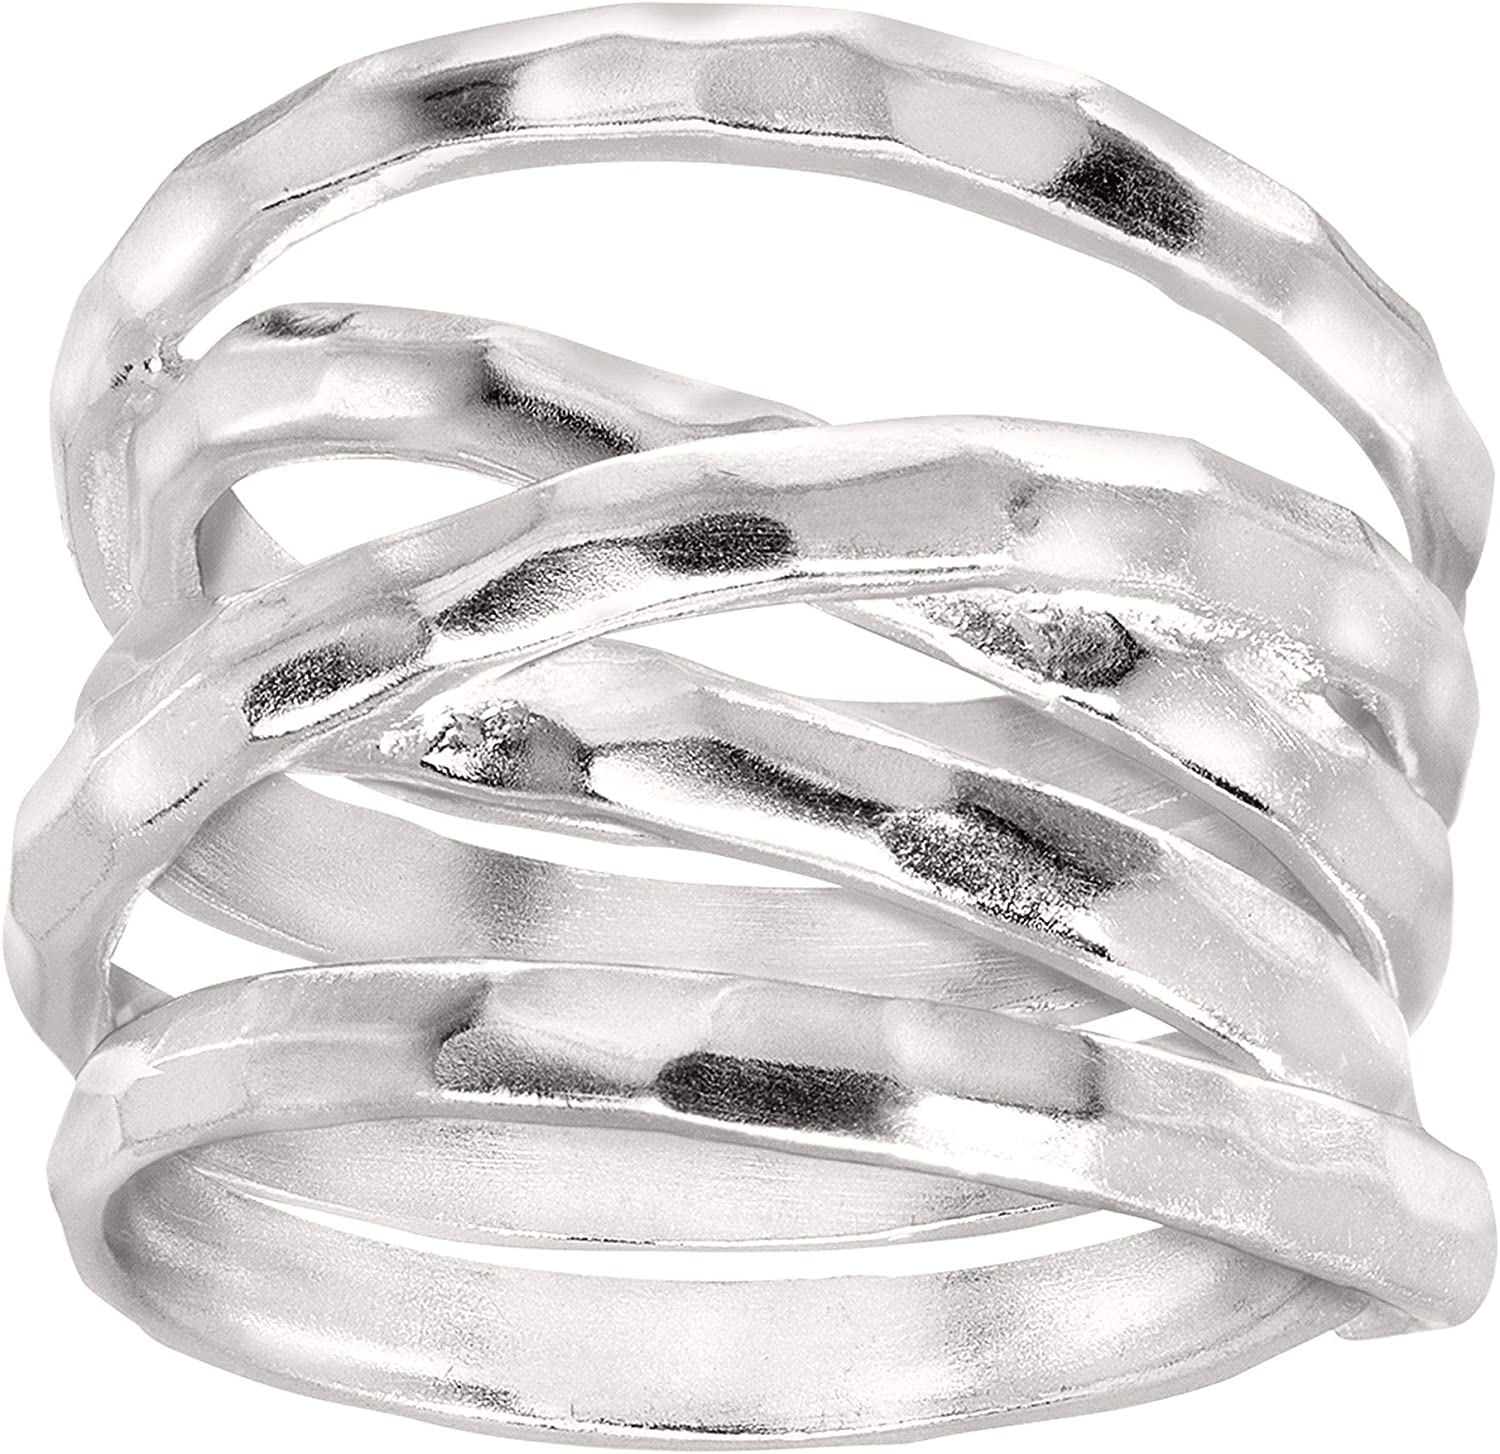 Silpada 'Wrapped Up' Overlapping Textured Wide Band Ring in Sterling Silver, Size 11